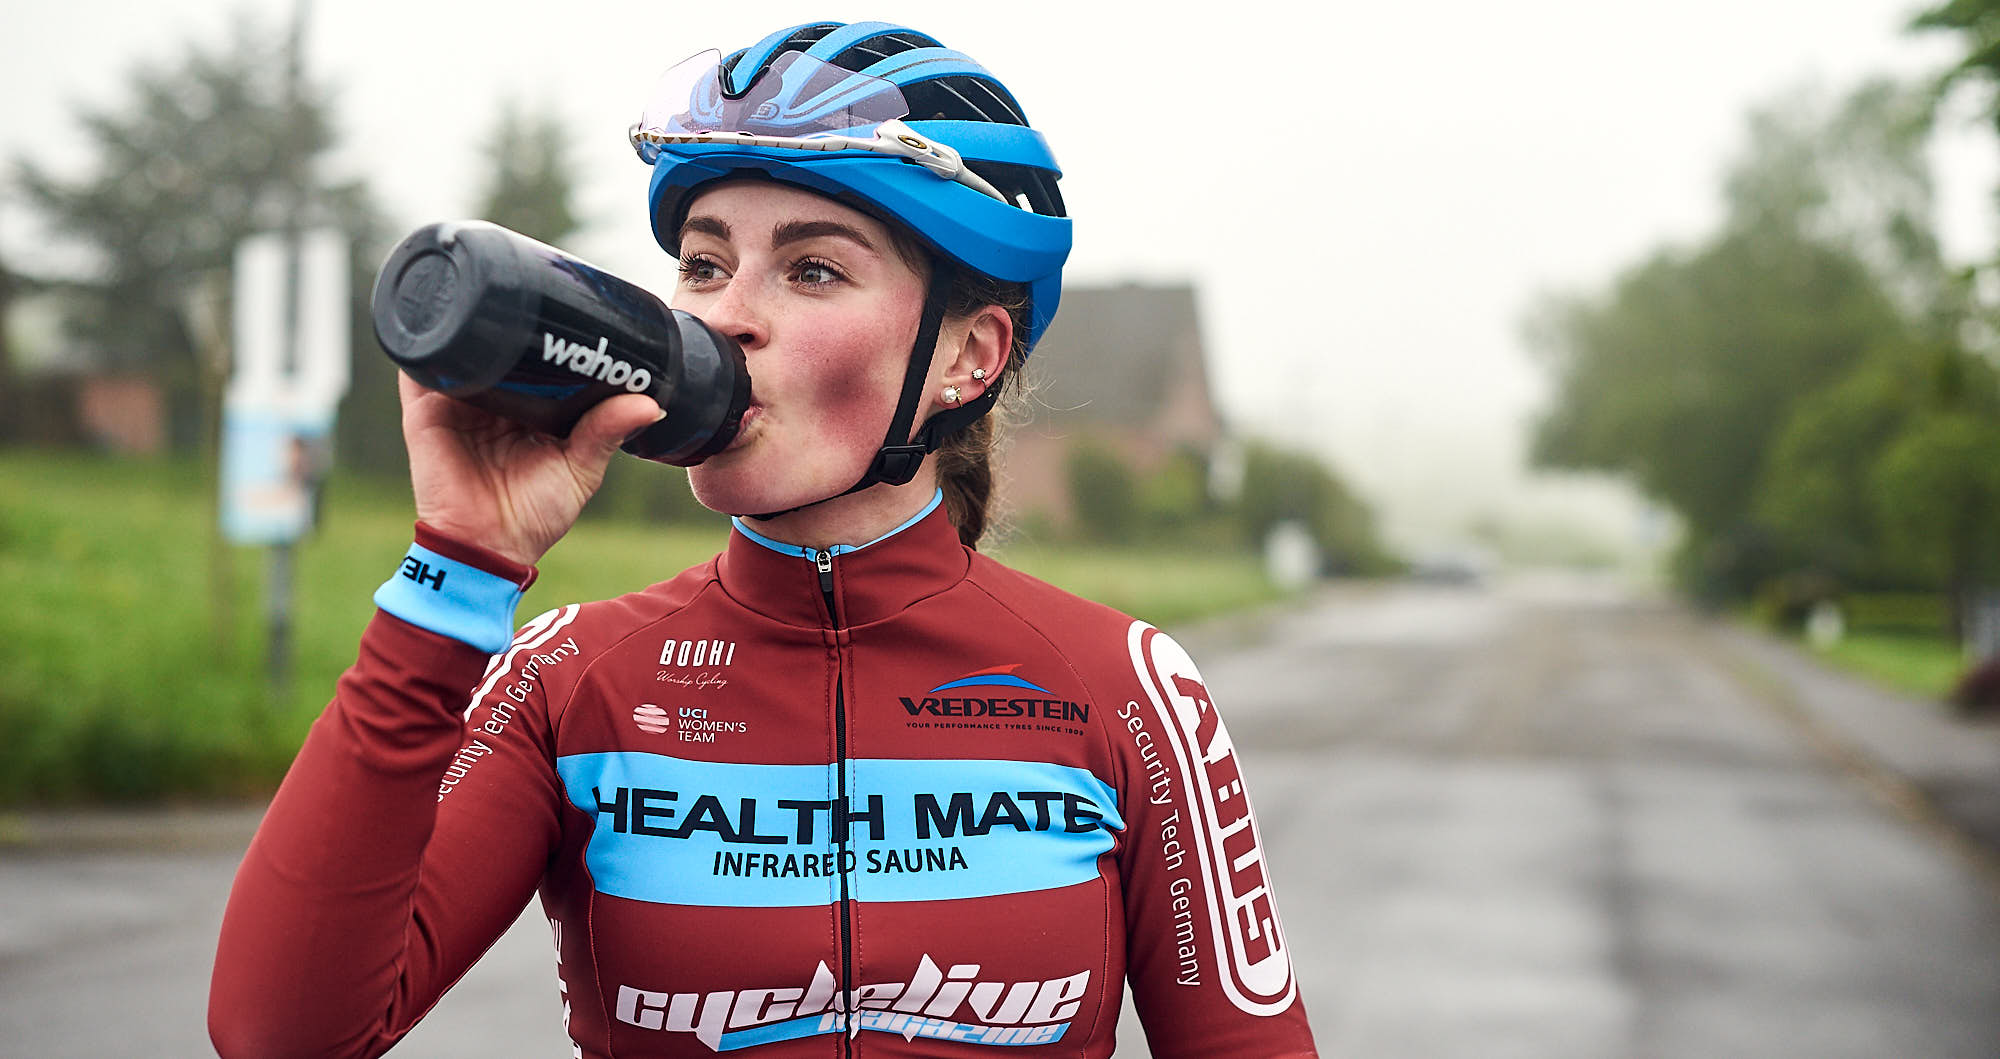 Elodie Kuijper rehydrating during training